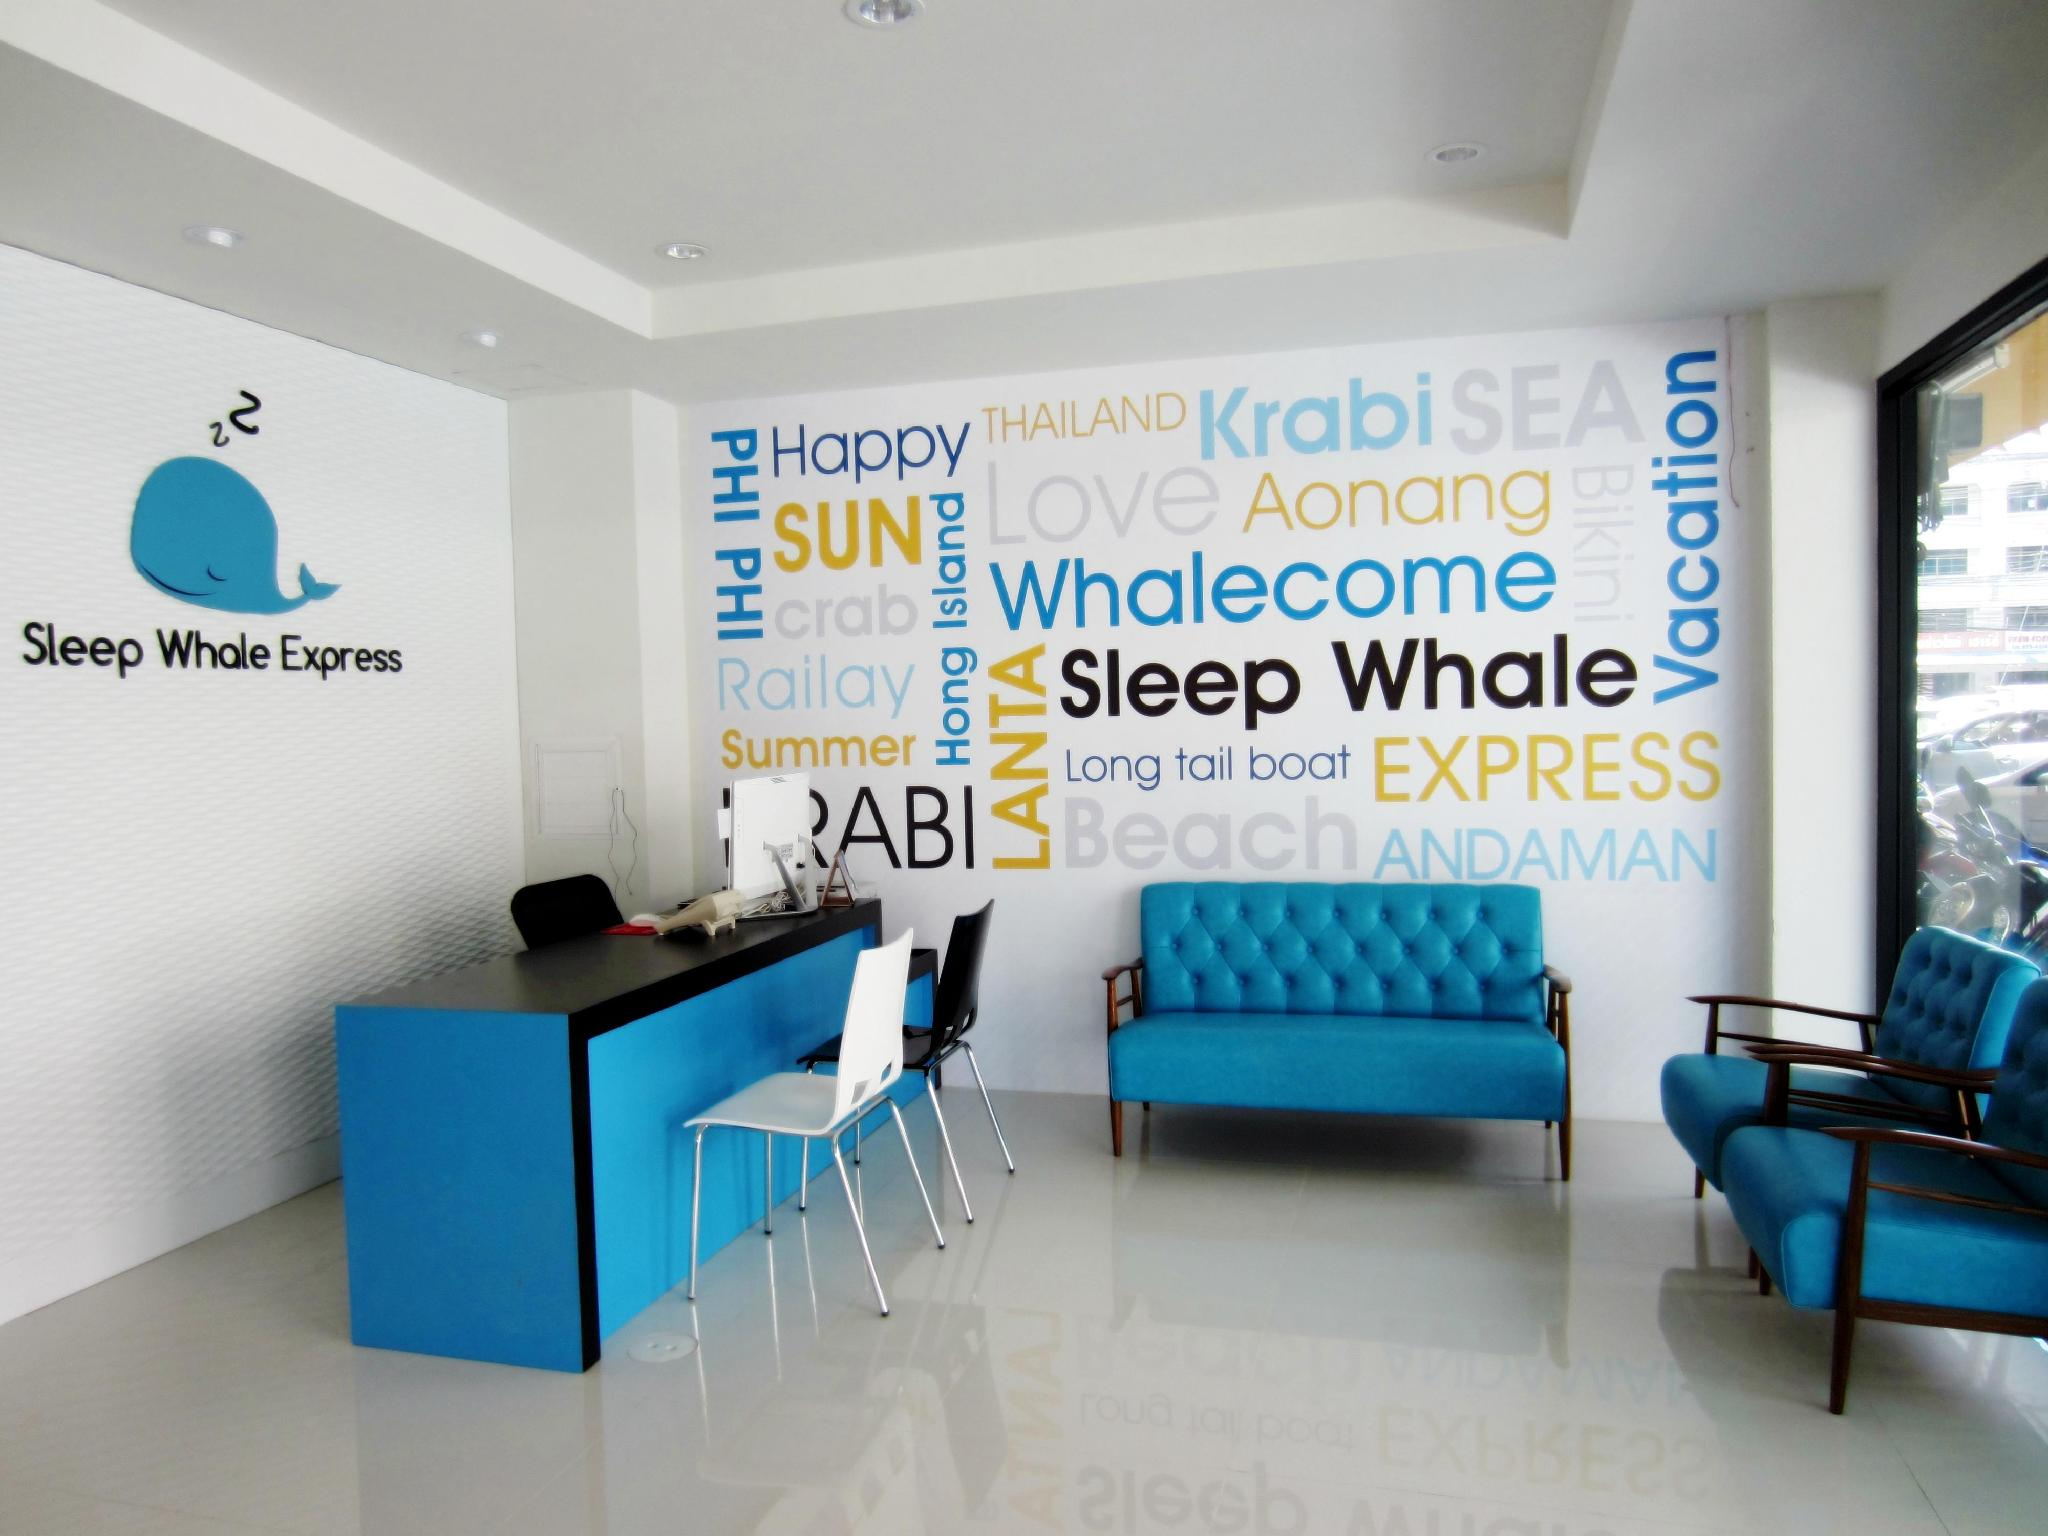 Sleep Whale Express Hotel - Hotell och Boende i Thailand i Asien